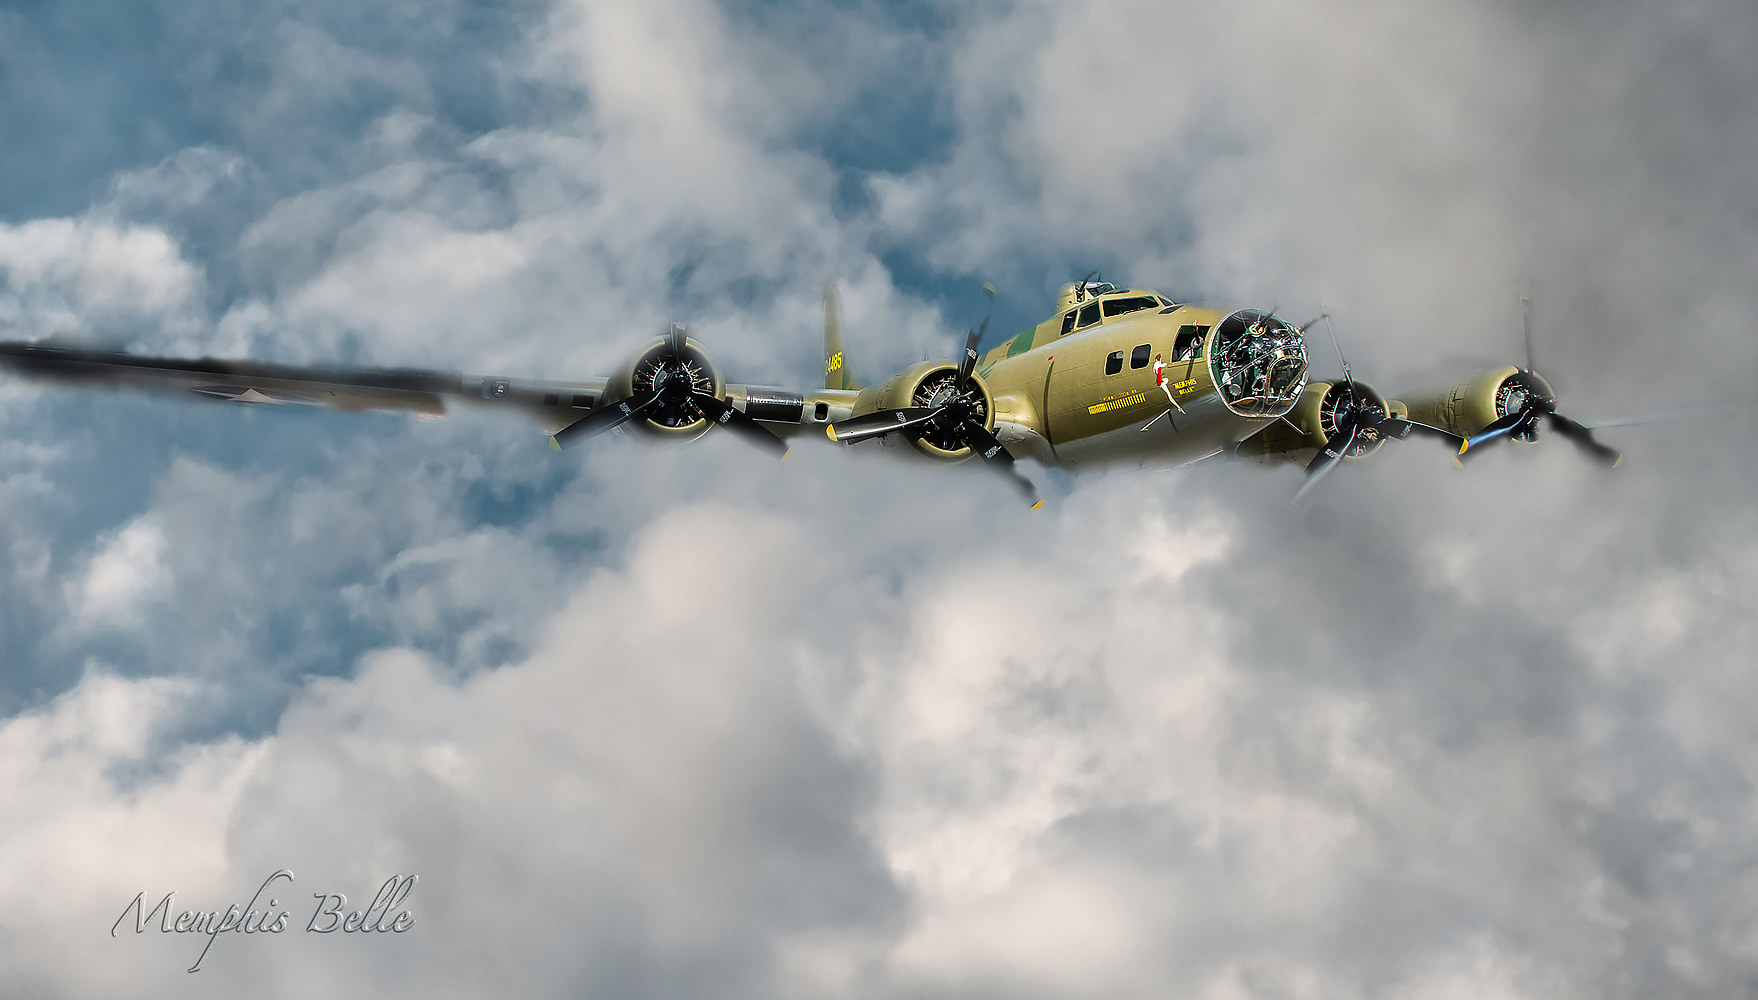 Memphis Belle by Andy Humphrey